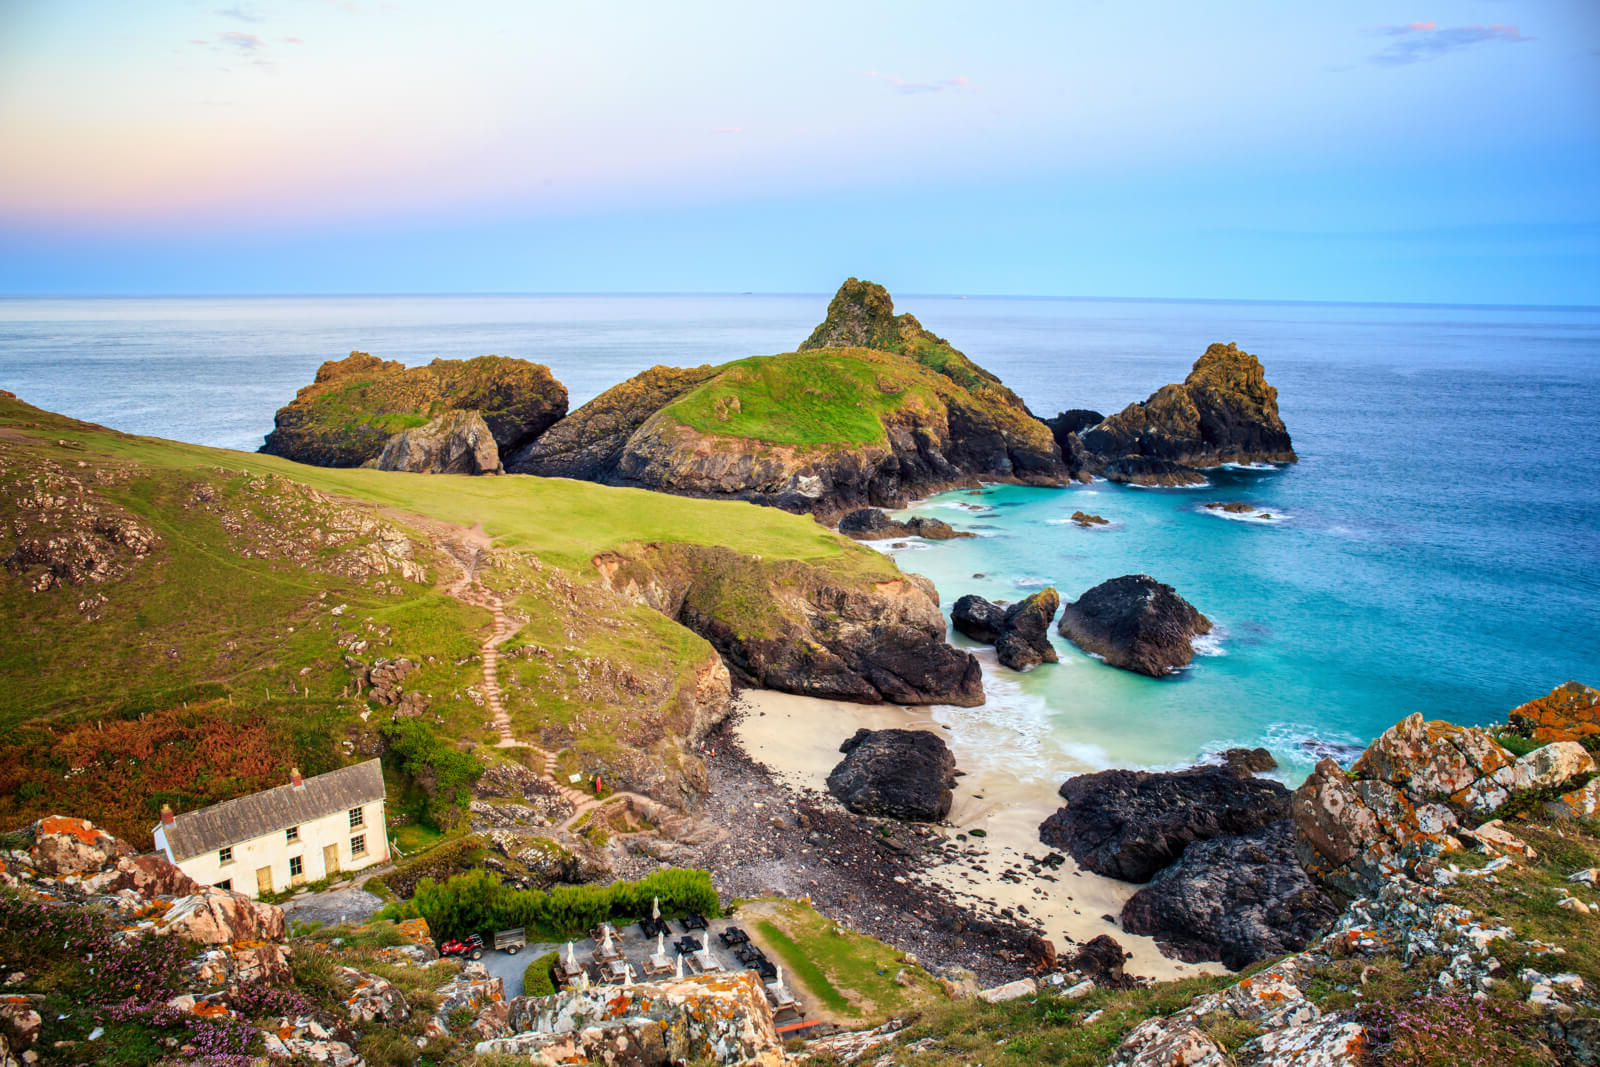 Staycation Cottages In Cornwall To Rent - Save up to 60%